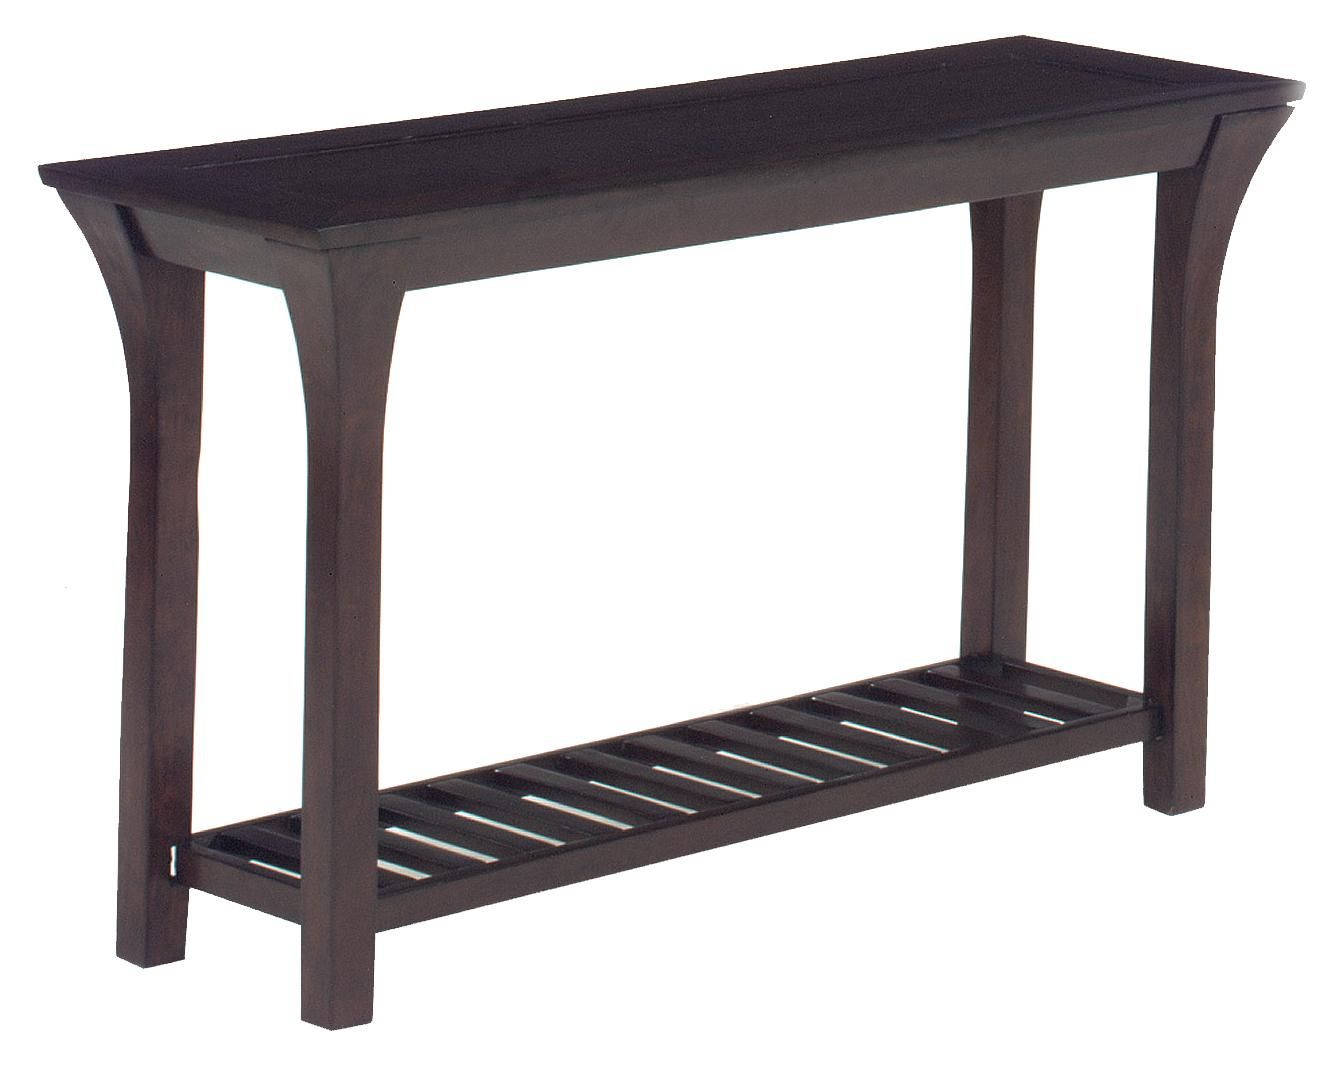 sports shoes b8bec 18409 813 Sofa Table by Jackson Furniture | Furniture | Table ...